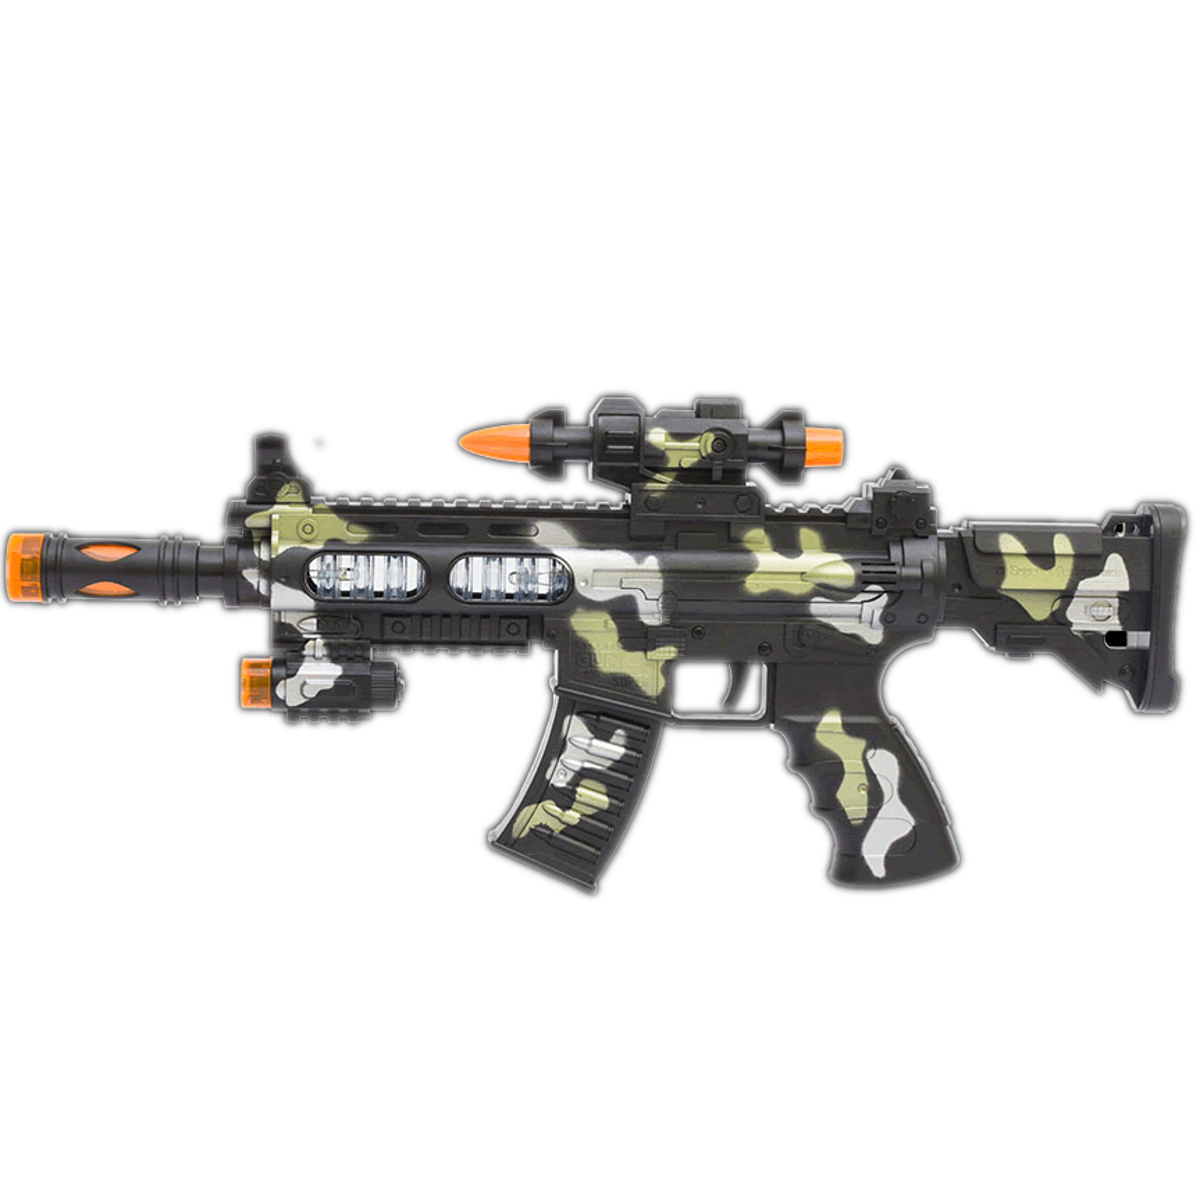 LED Camo Toy Machine Gun with Movement and Sound All Products